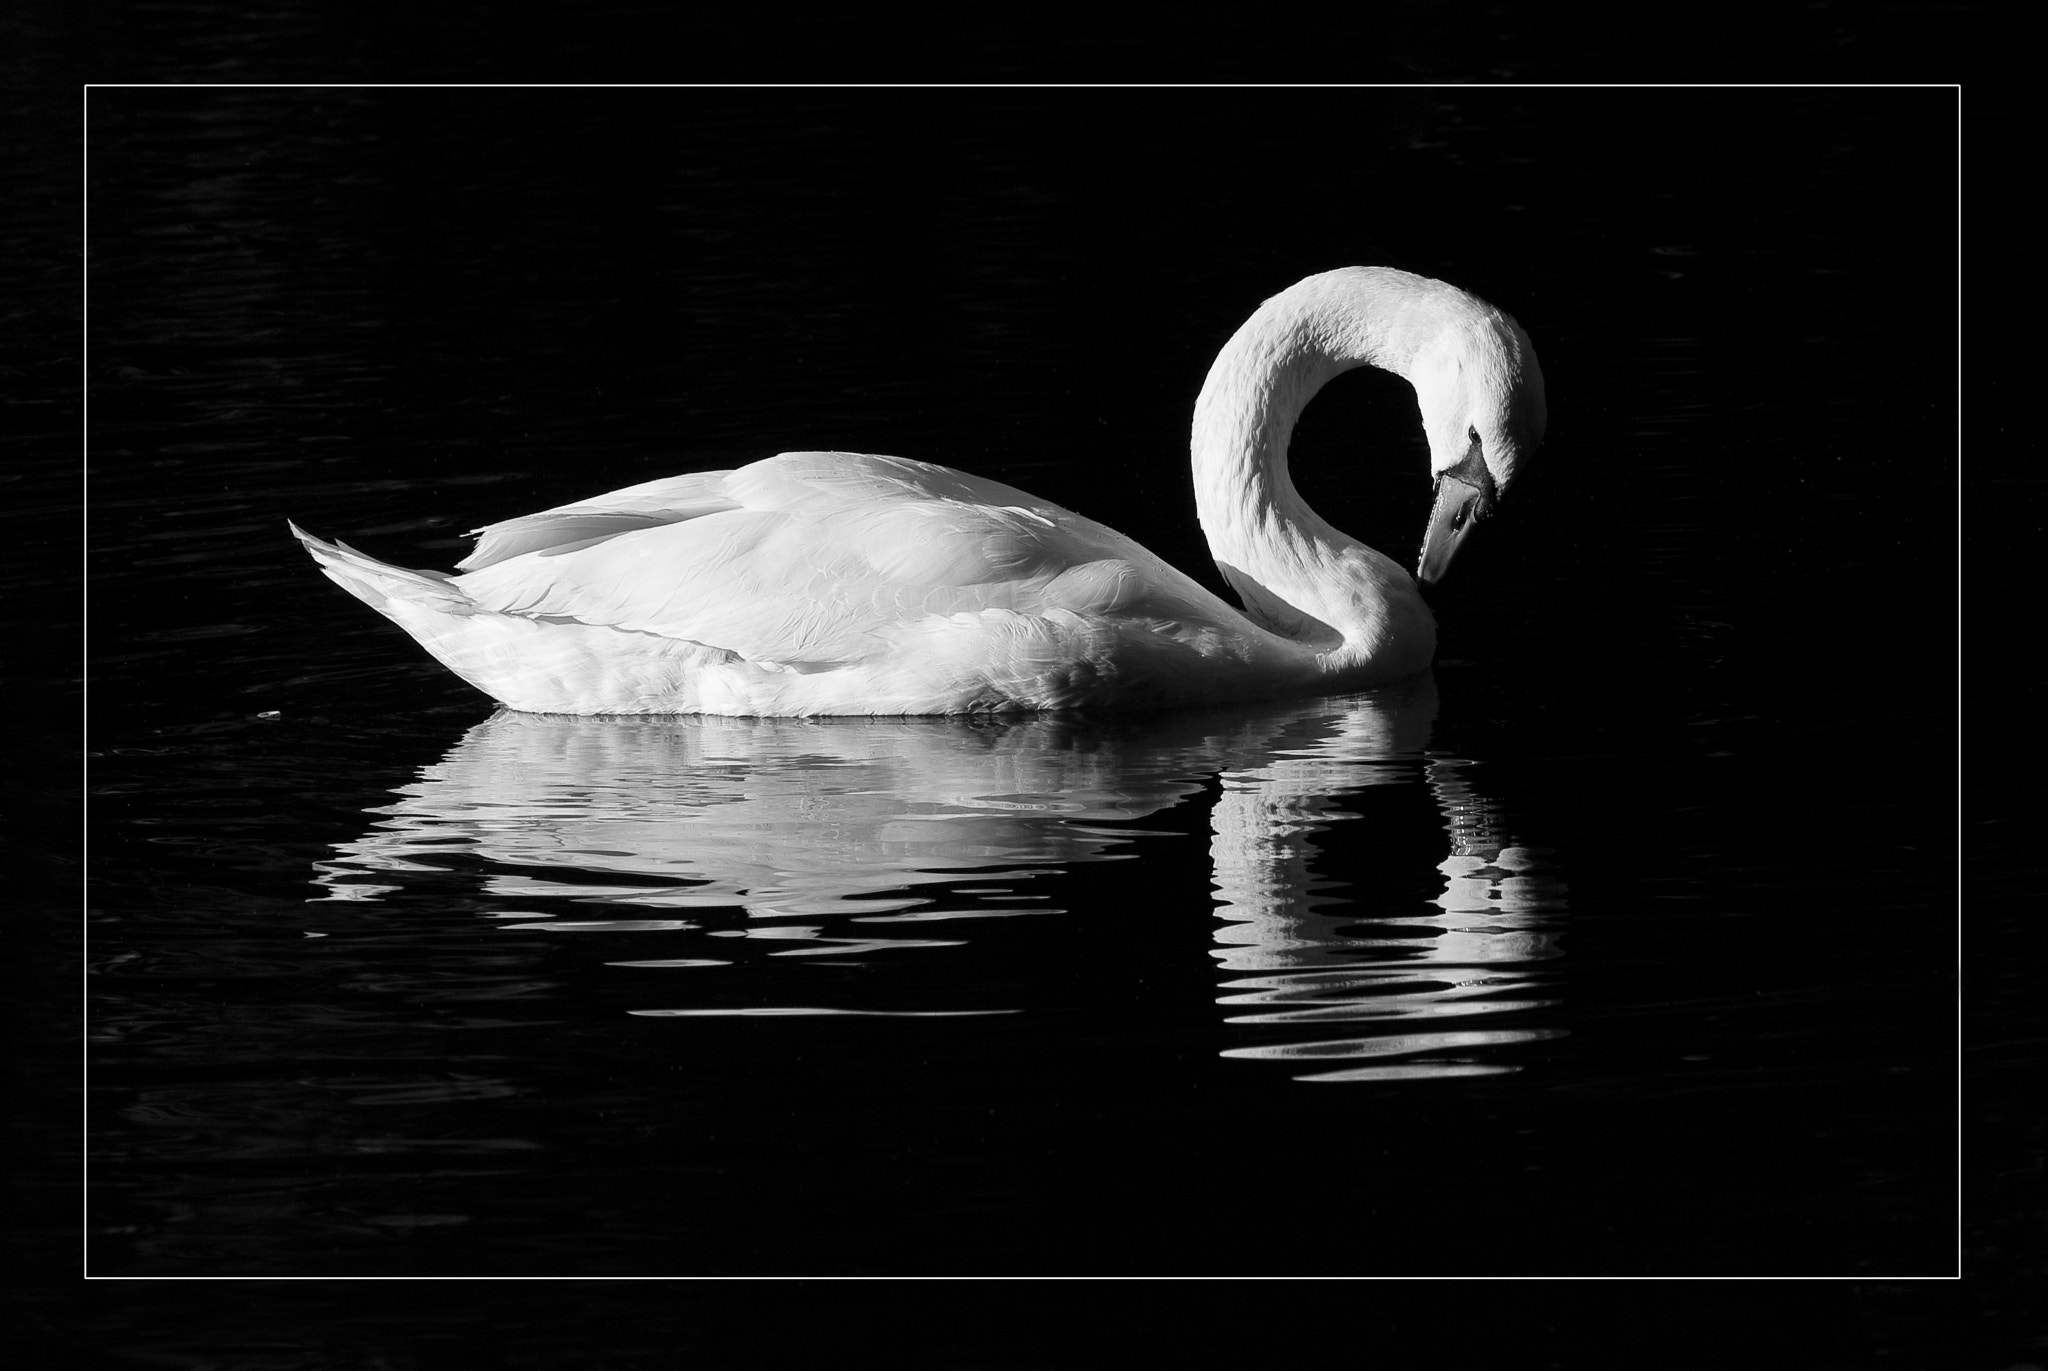 Photograph Swan by Alexander Männel on 500px